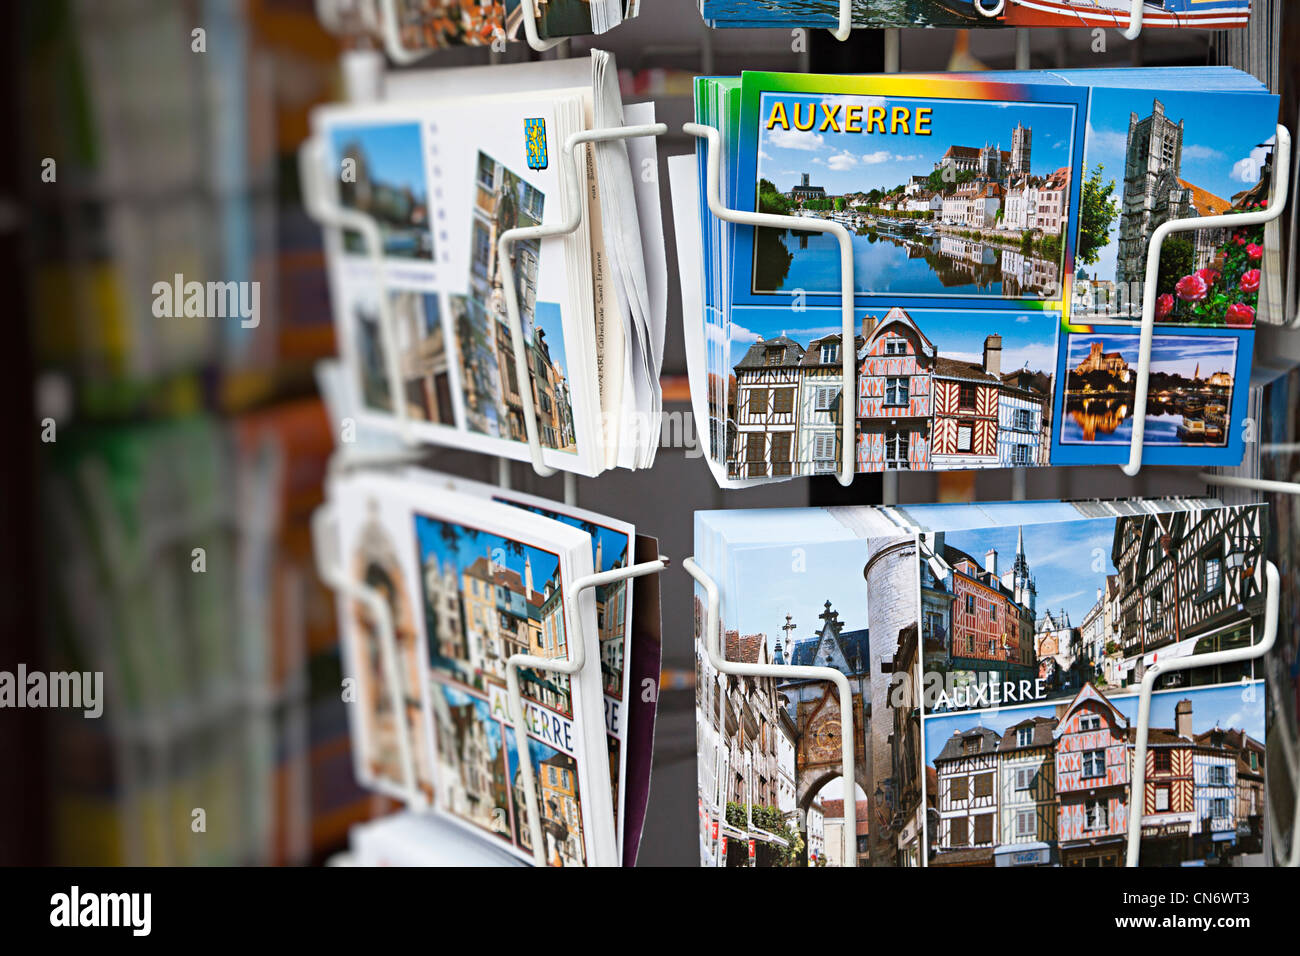 Postcards on sale, Auxerre, Burgundy, France - Stock Image